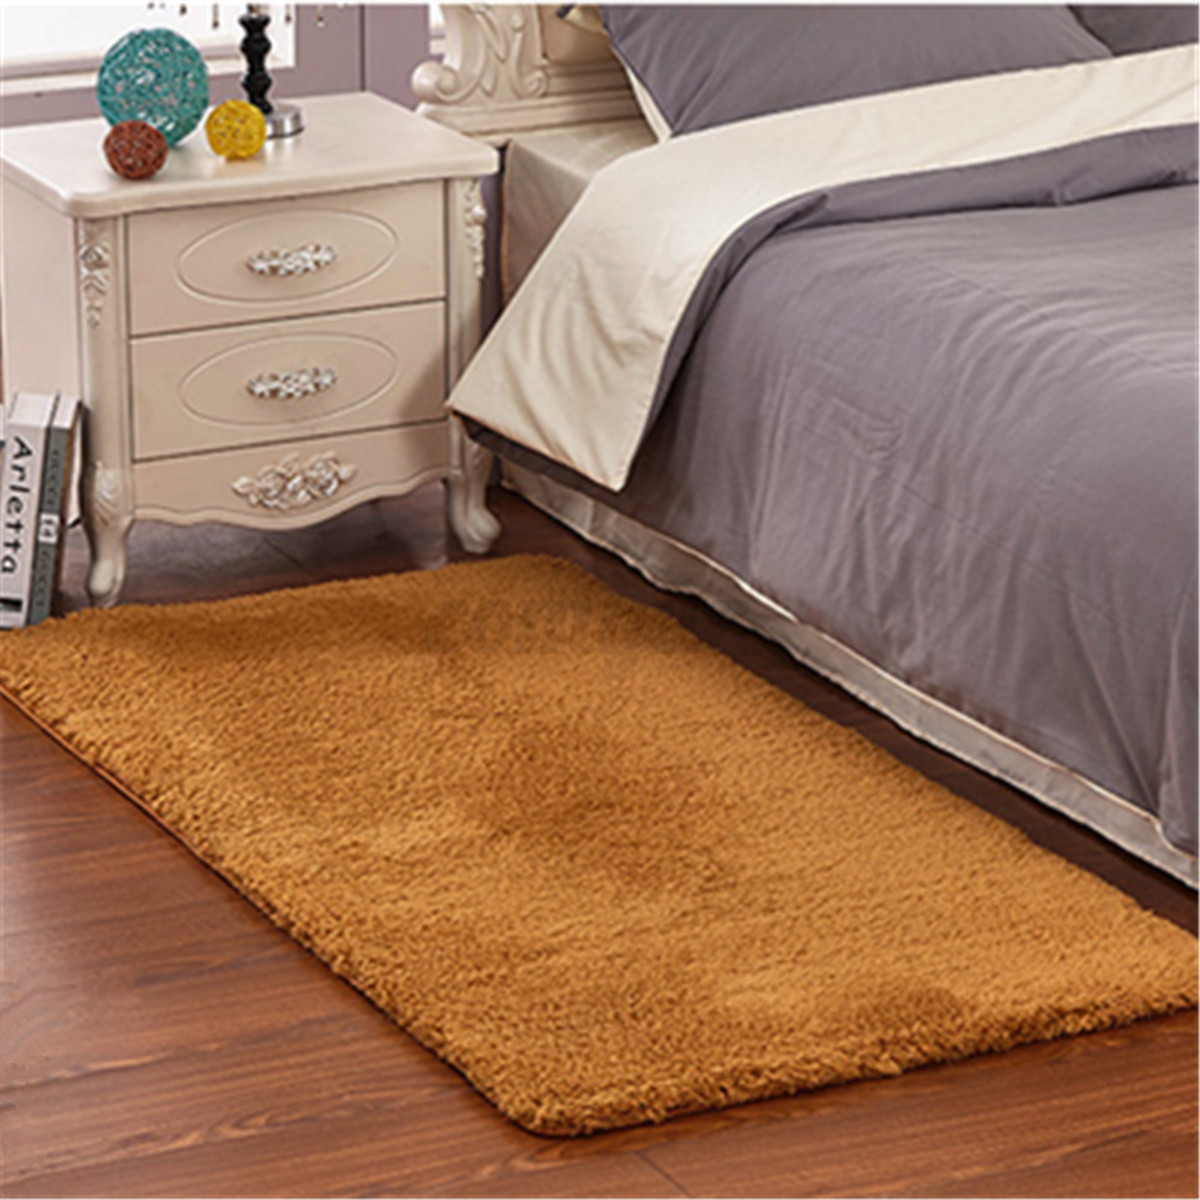 60x120cm anti skid shaggy fluffy area rug bedroom carpet for Rug in bedroom